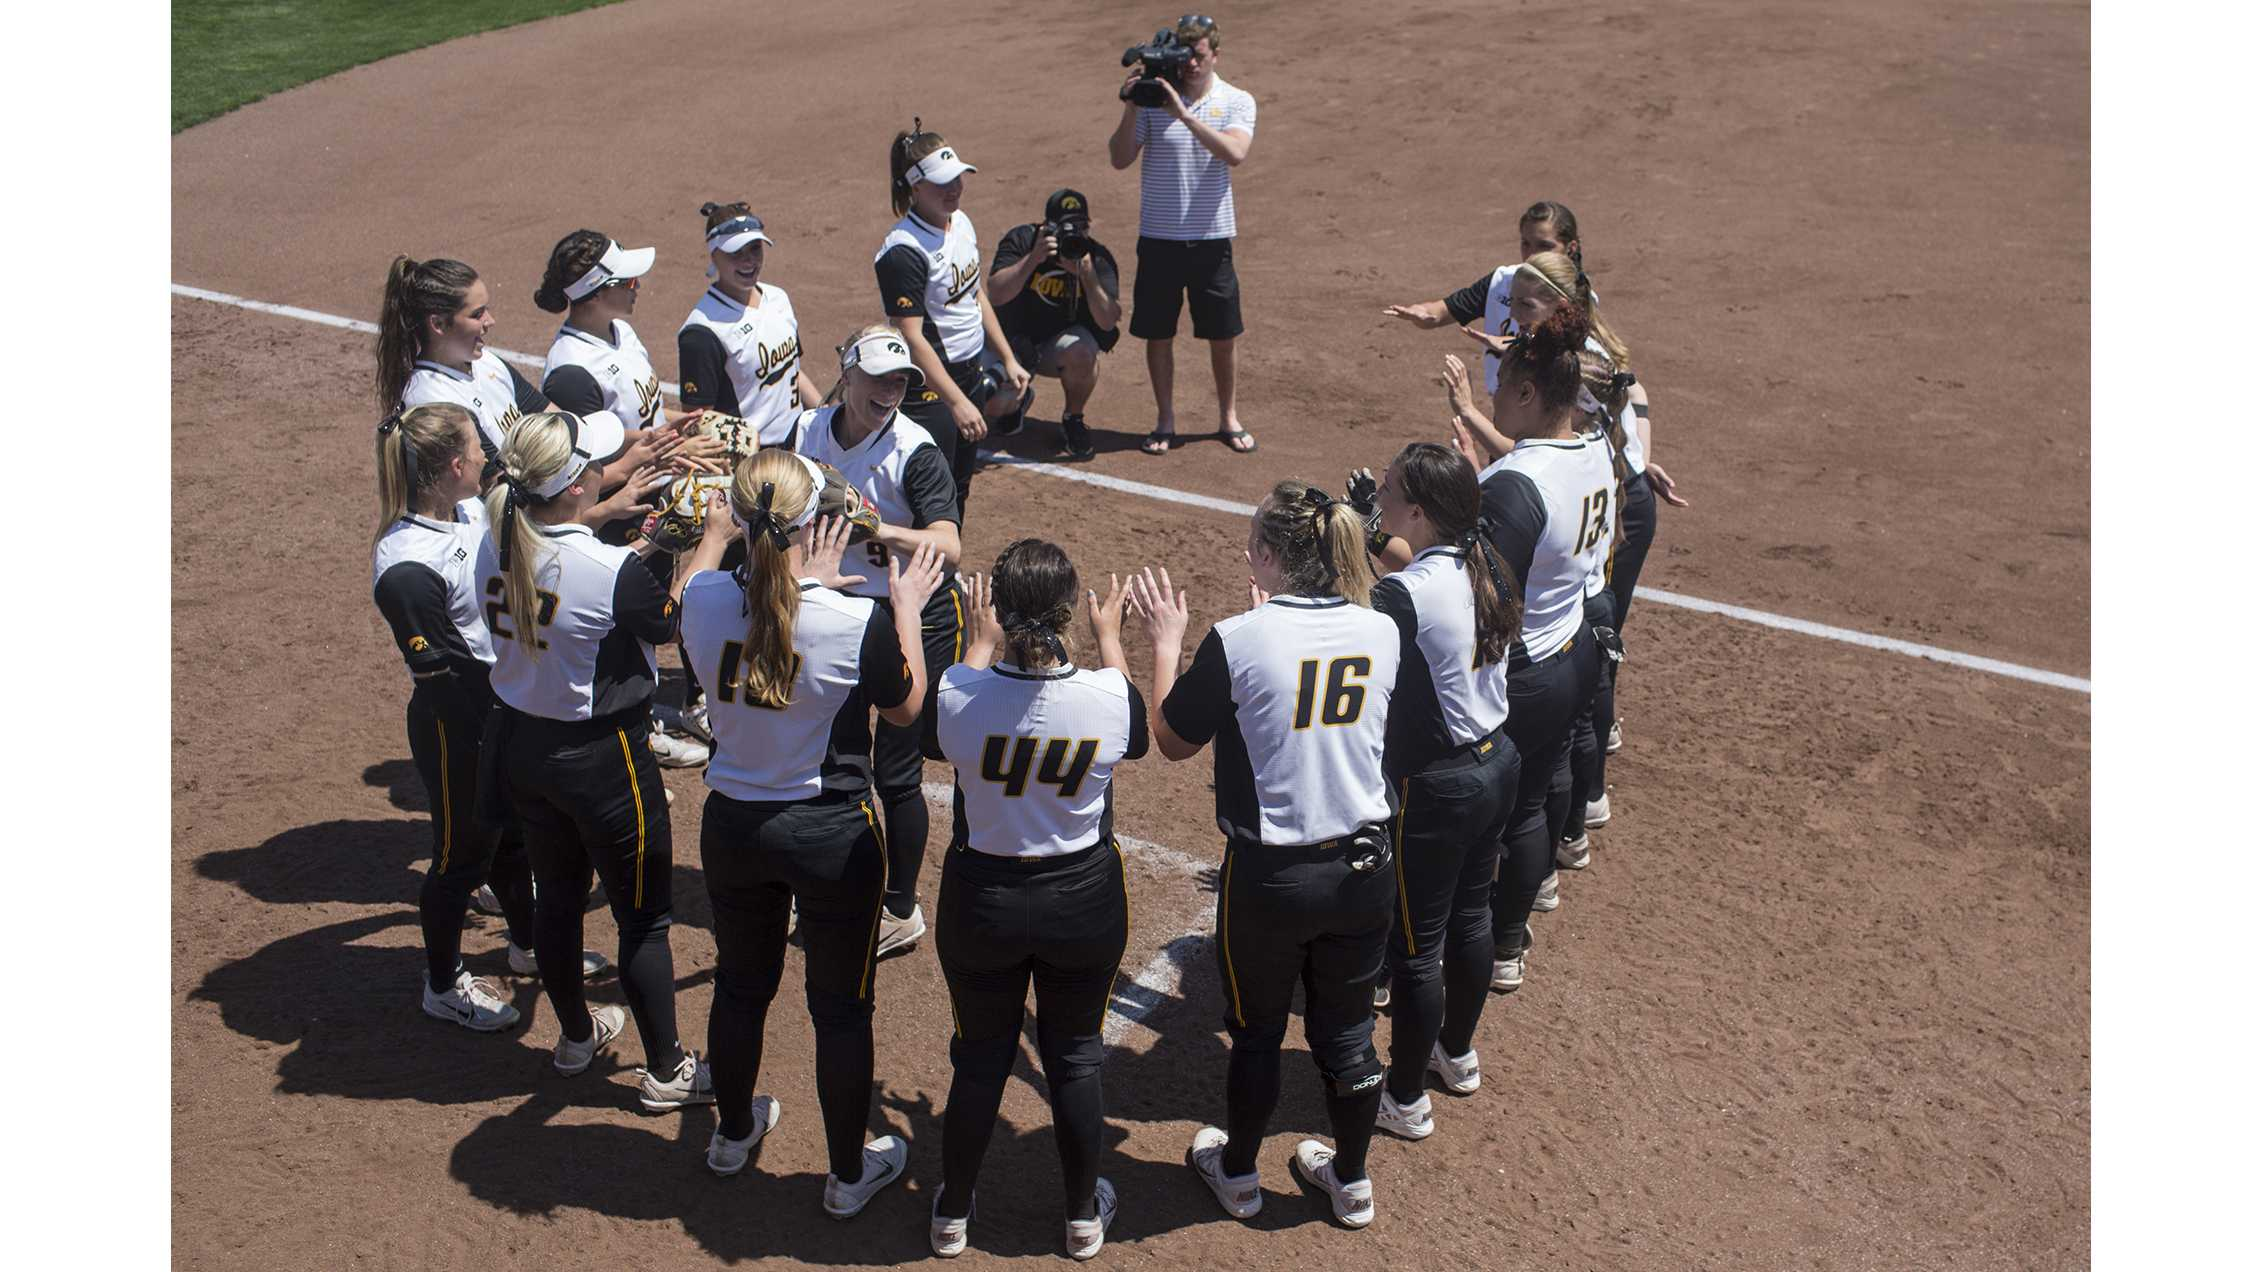 Iowa's Sarah Kurtz is introduced before a softball game between Iowa and Purdue on Sunday, May 6, 2018. The Boilermakers spoiled the Hawkeyes' senior day, 6-0. (Shivansh Ahuja/The Daily Iowan)